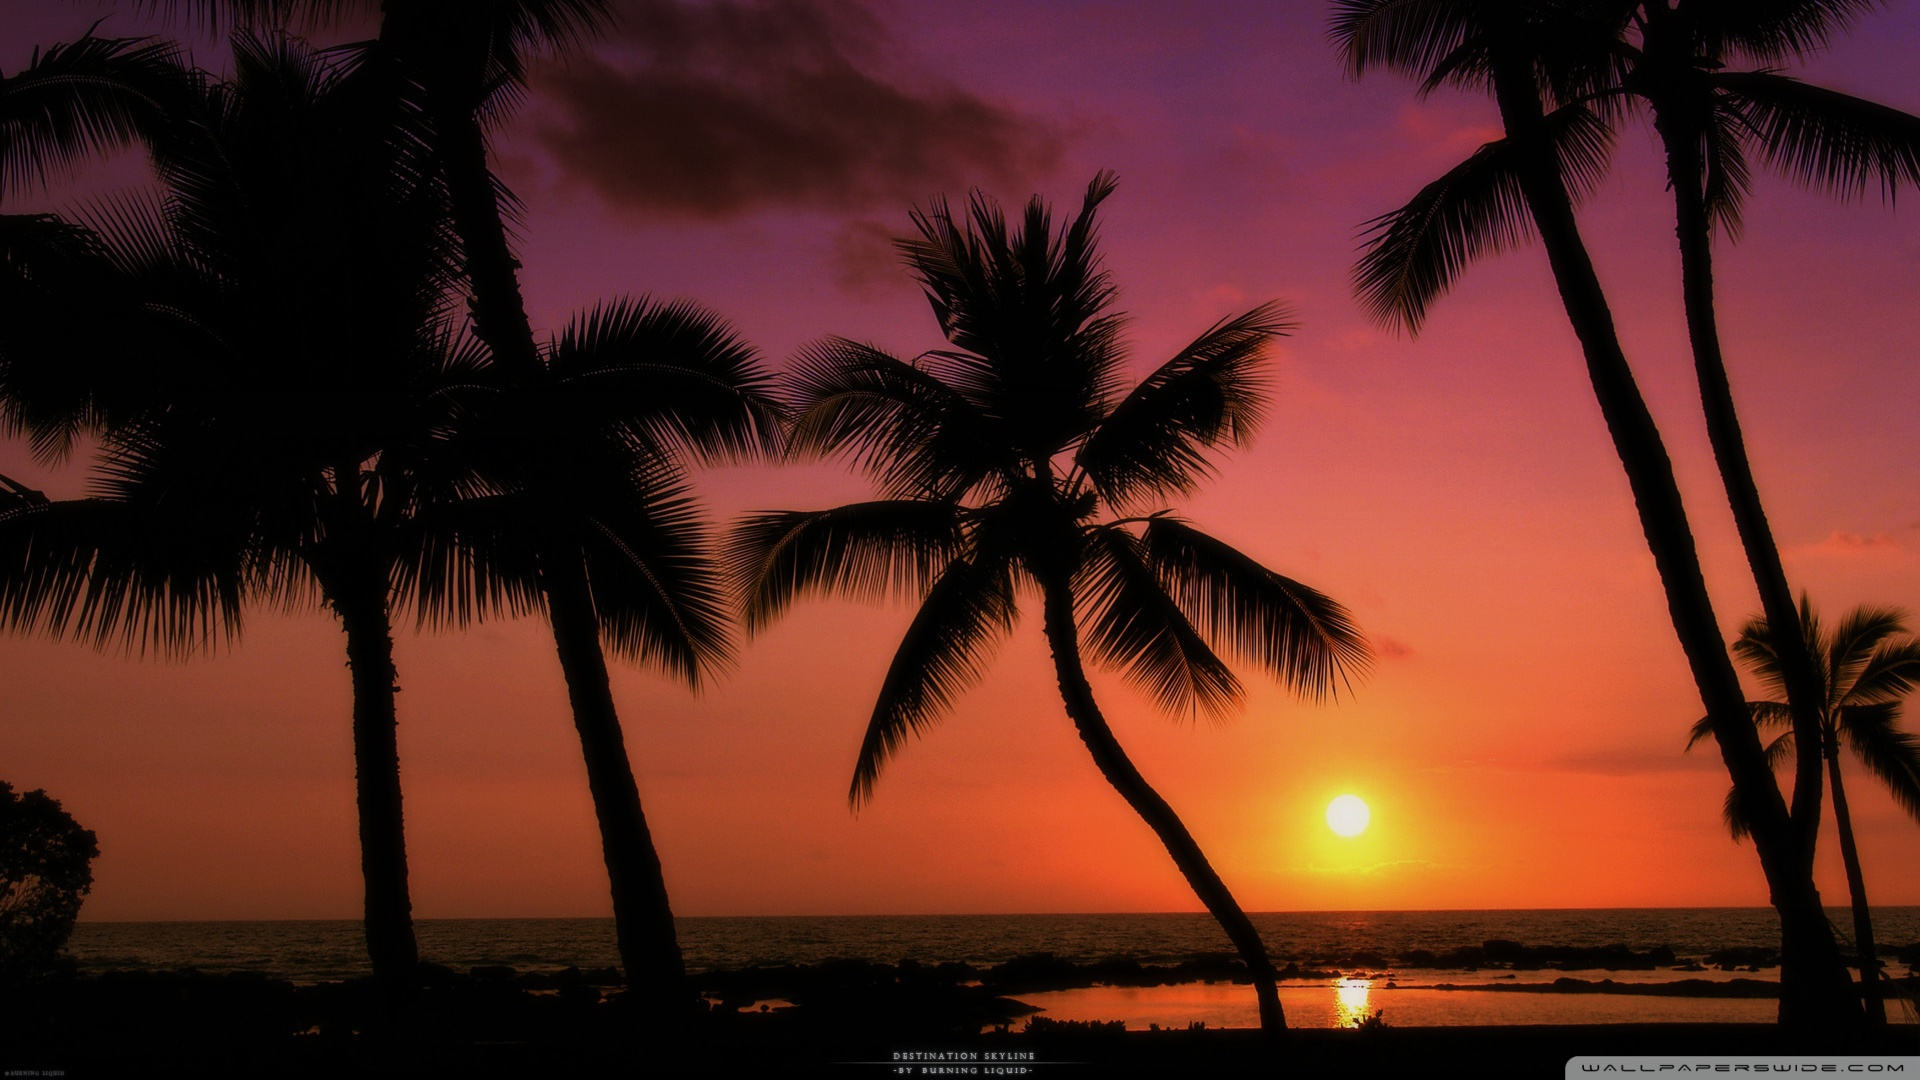 Tropical Beach Sunset wallpaper   856650 1920x1080